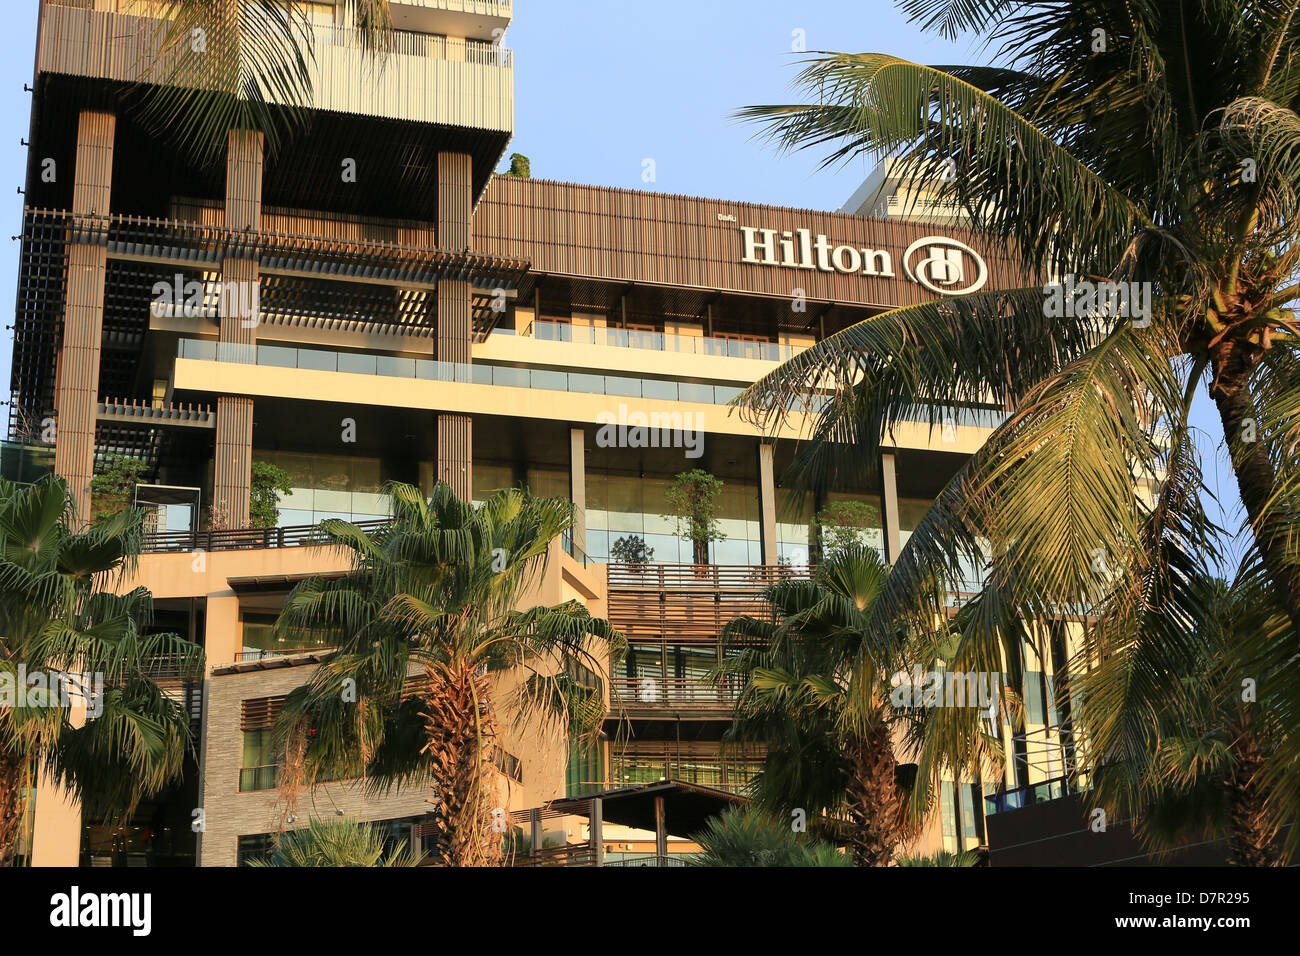 Facade of the Hilton Hotel in Pattaya, Thailand - Stock Image